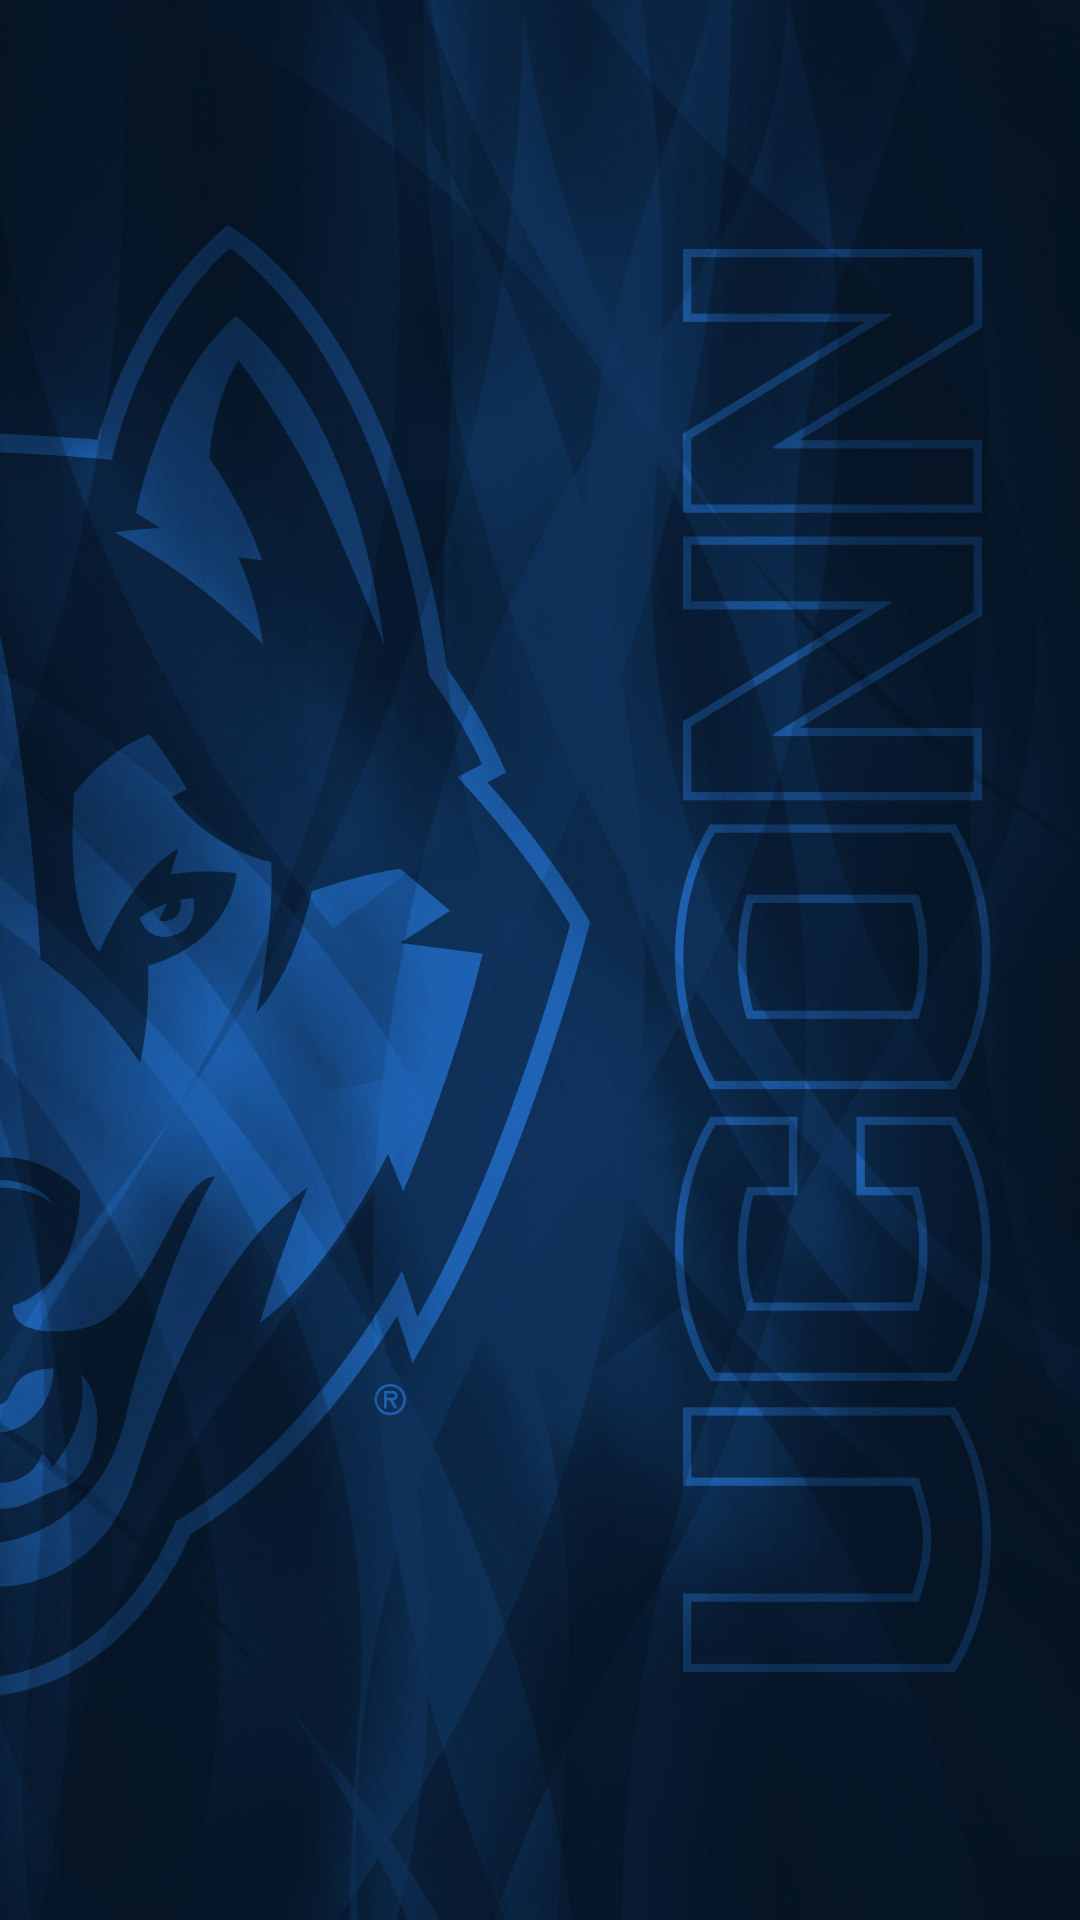 desktop wallpaper - uconn huskies | university of connecticut athletics